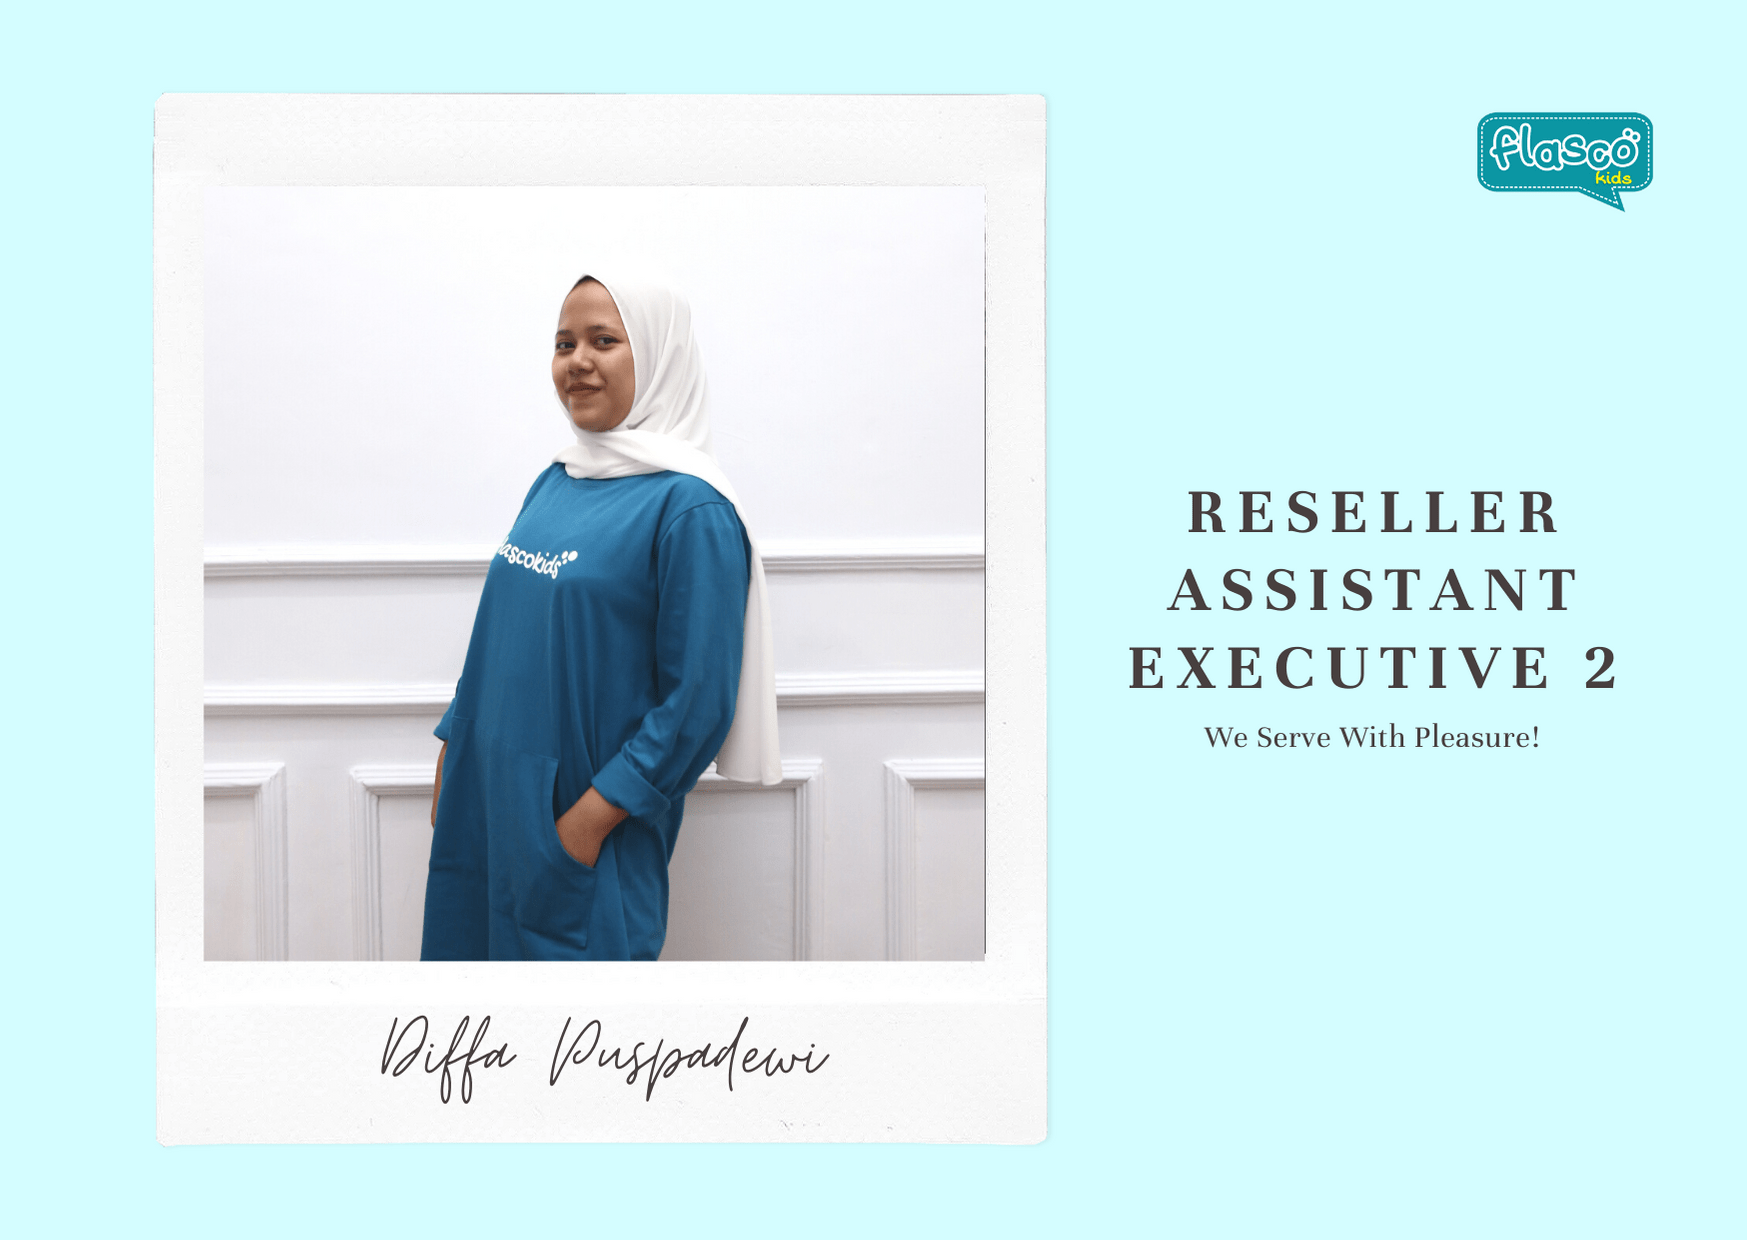 reseller assistant executive 2 flascokids